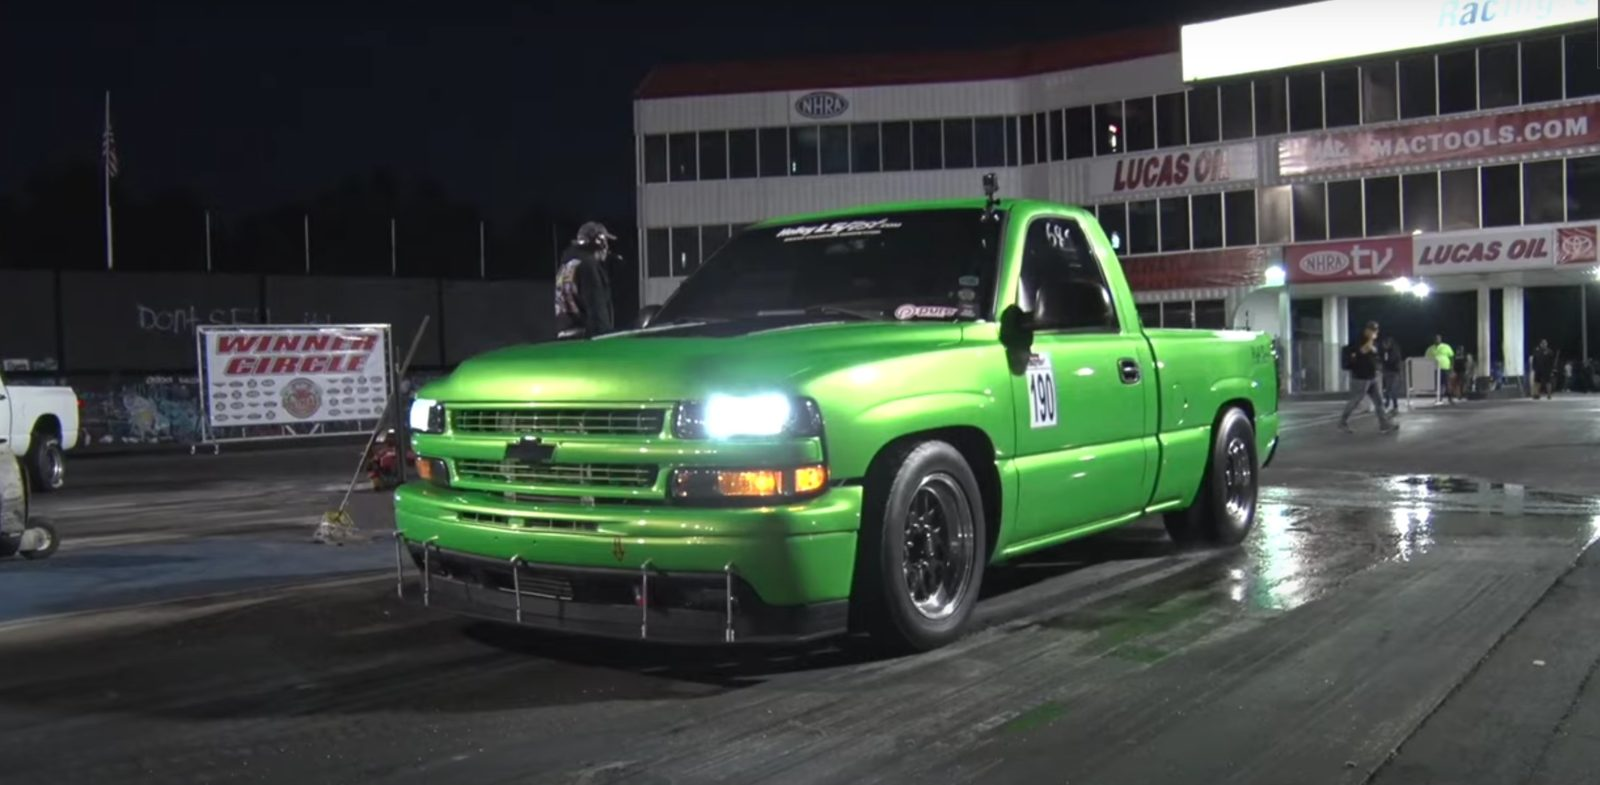 watch:-autocross-truck-shows-drag-racers-how-it's-done-on-their-home-turf